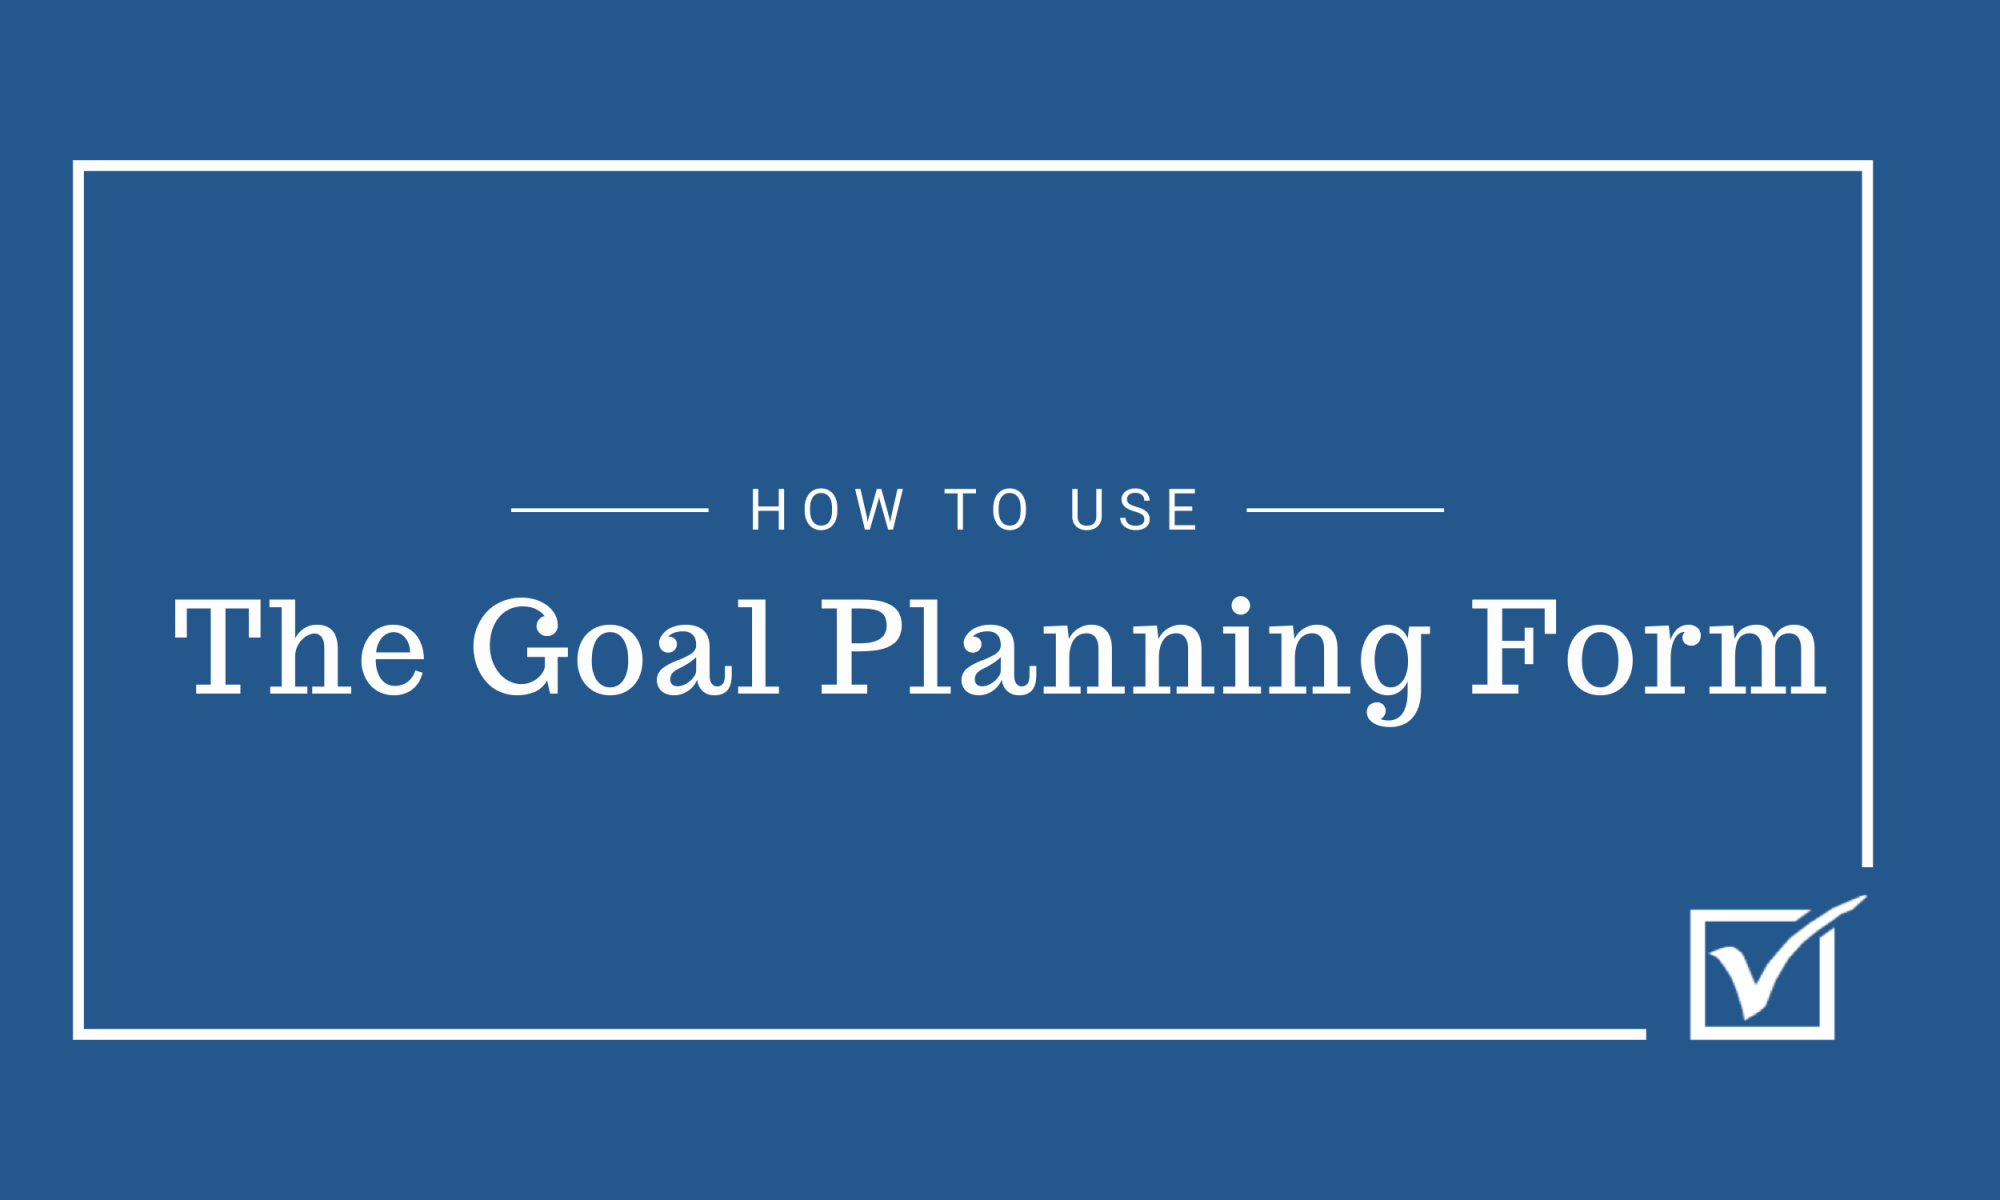 How to use The Goal Planning Form